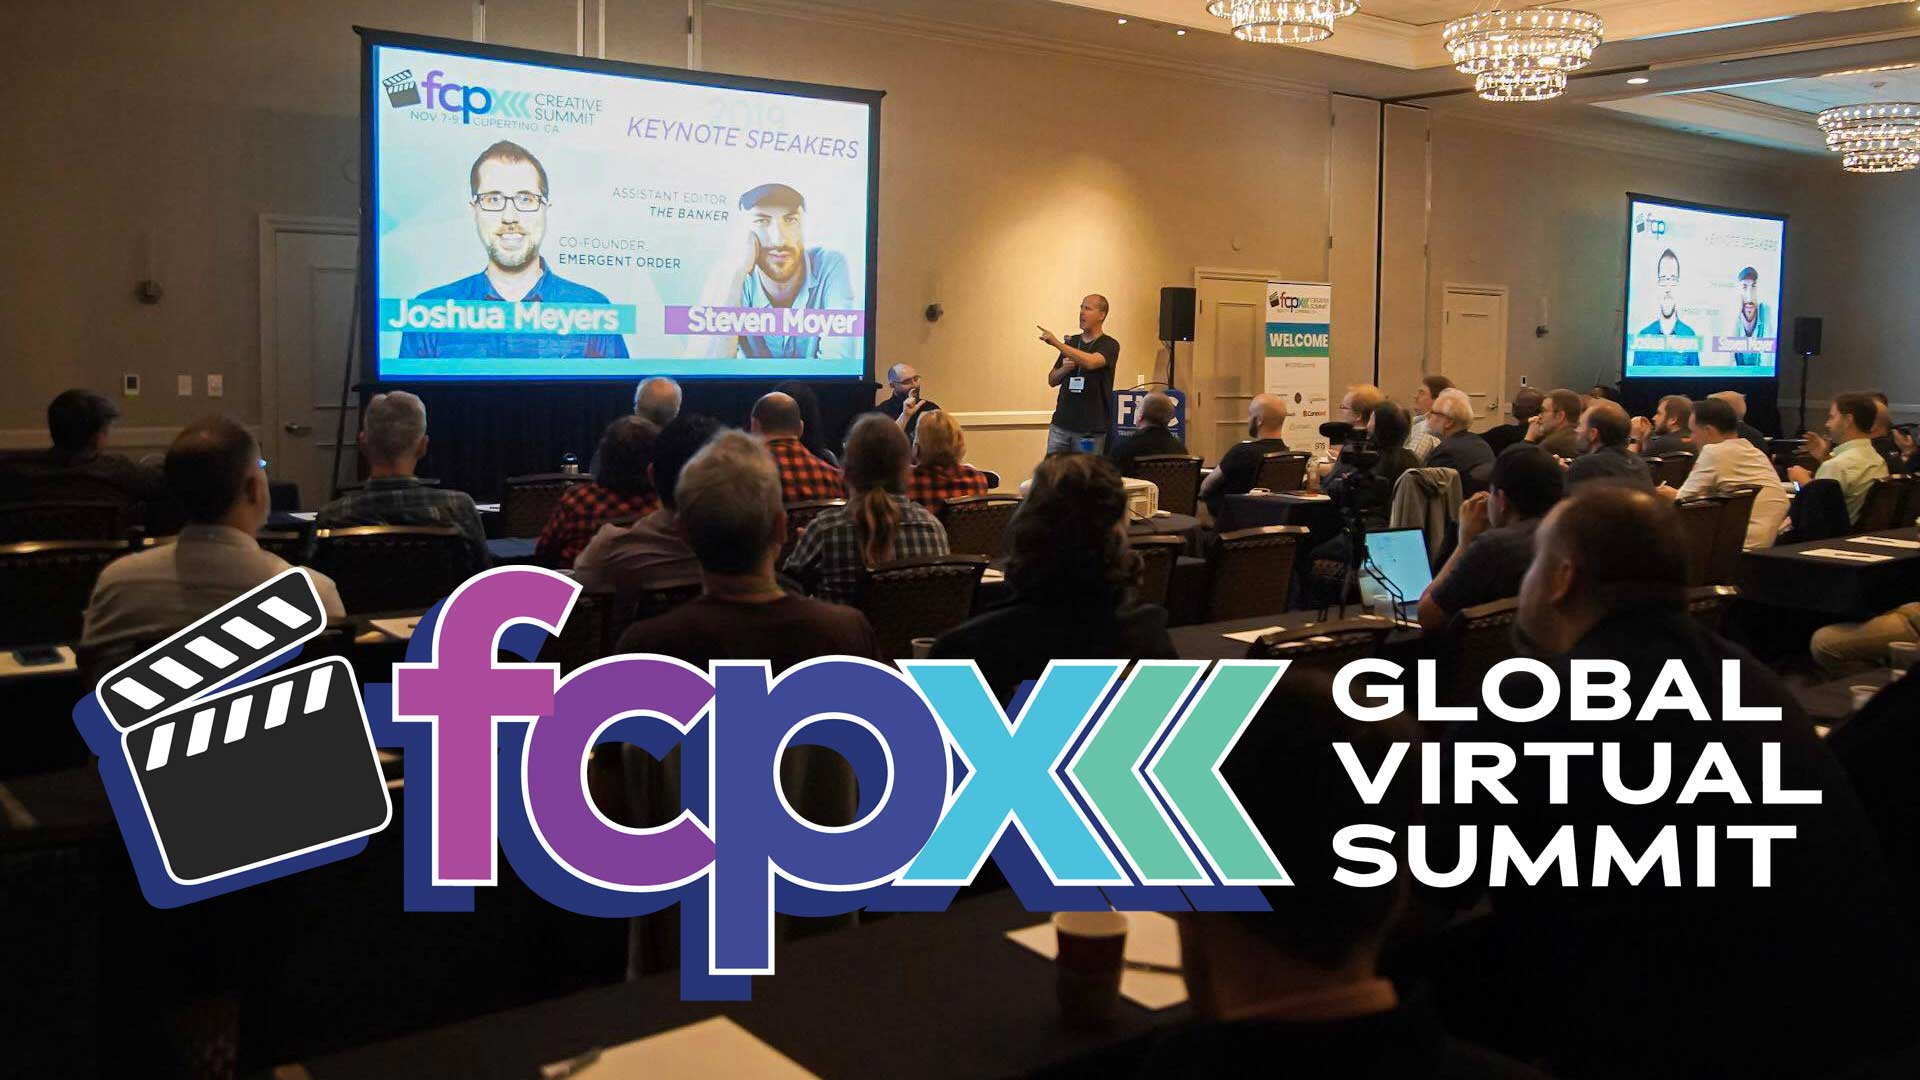 FMC Announces the 2020 FCPX Global Virtual Summit in November